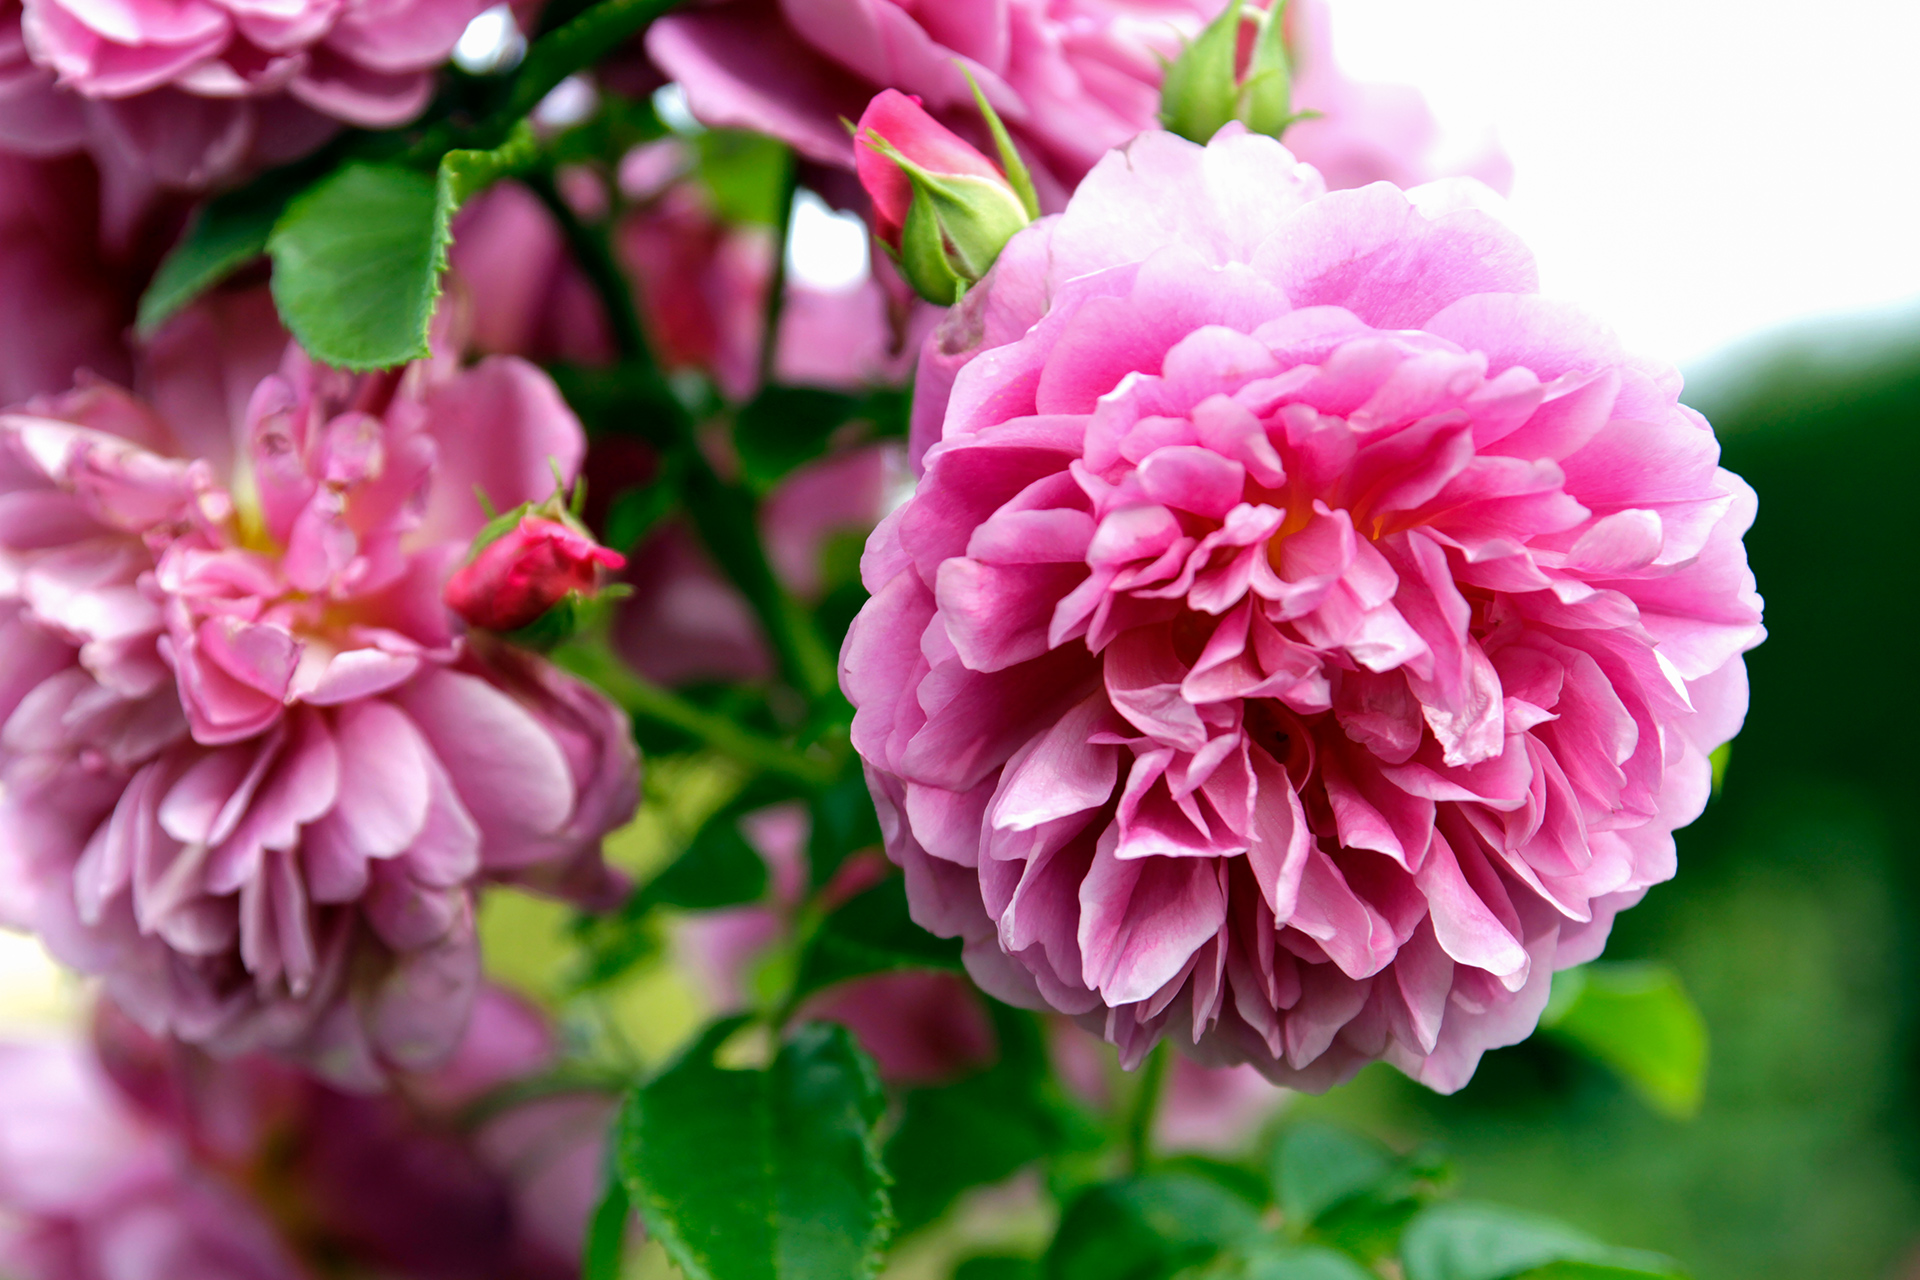 The 10 Most Fragrant Flowers to Plant in Your Garden